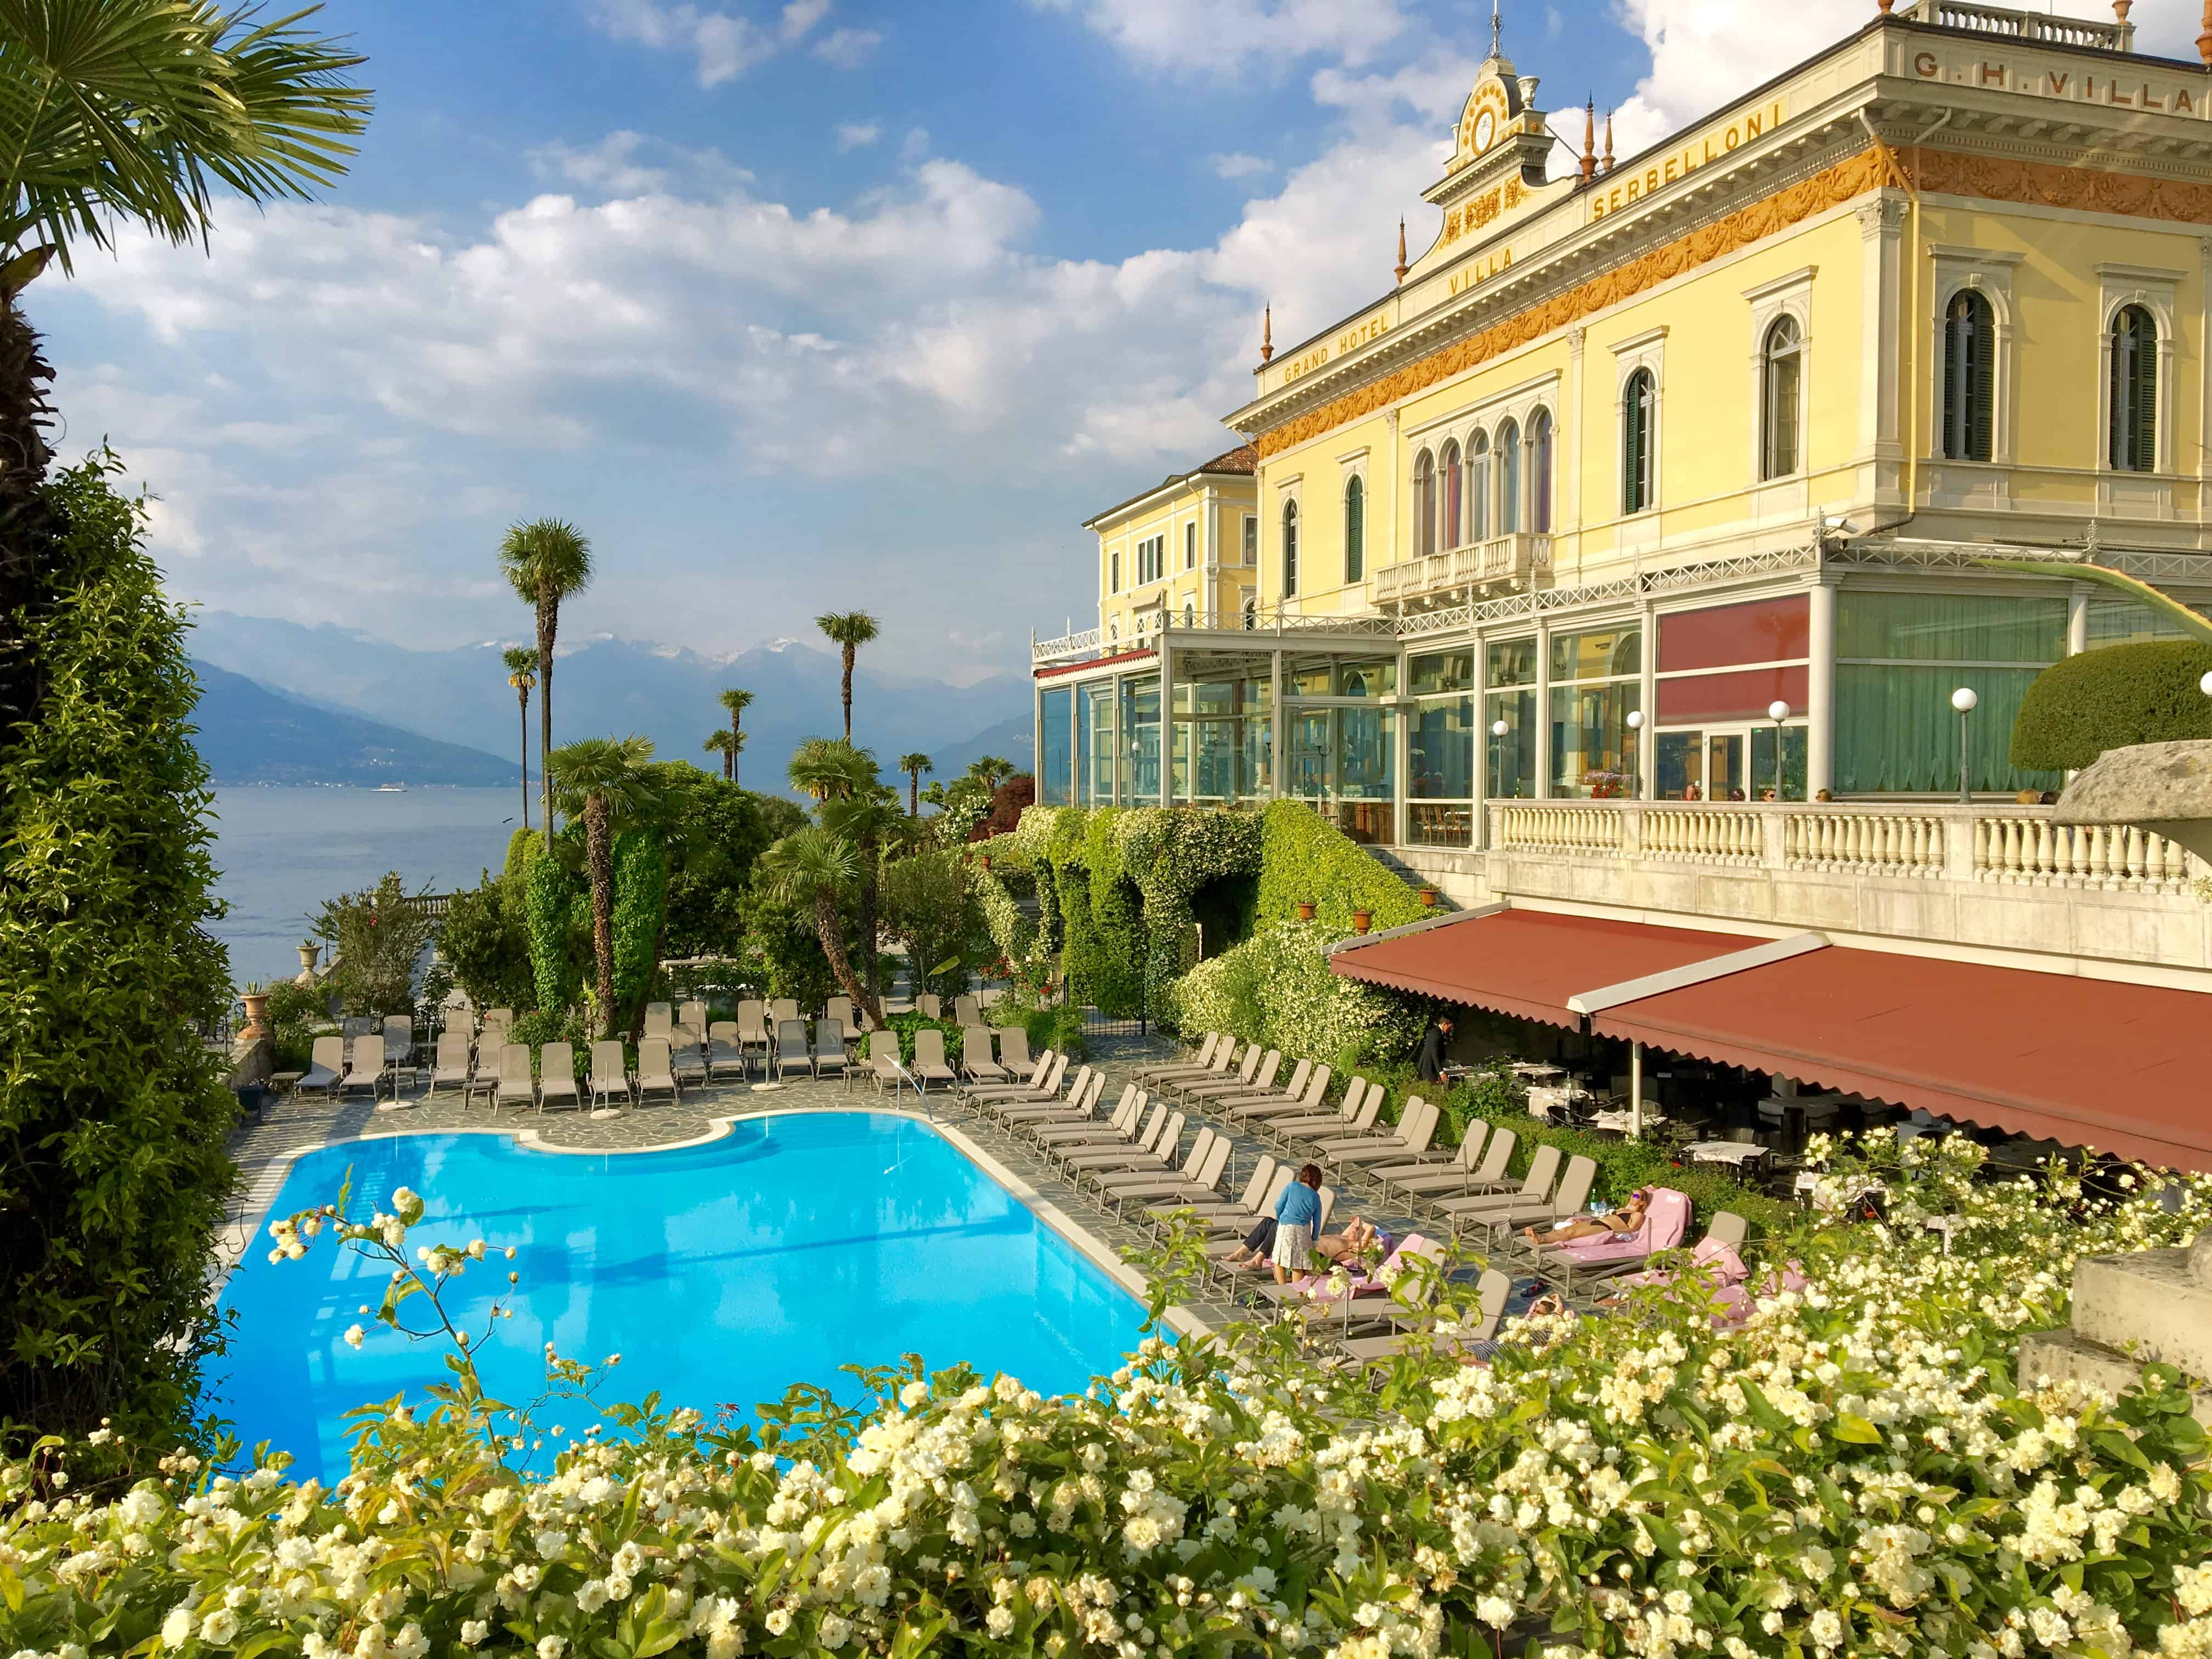 Arte Swiss Quality Hotel Zurich The Truly Grand Hotel Villa Serbelloni In Bellagio On Lake Como